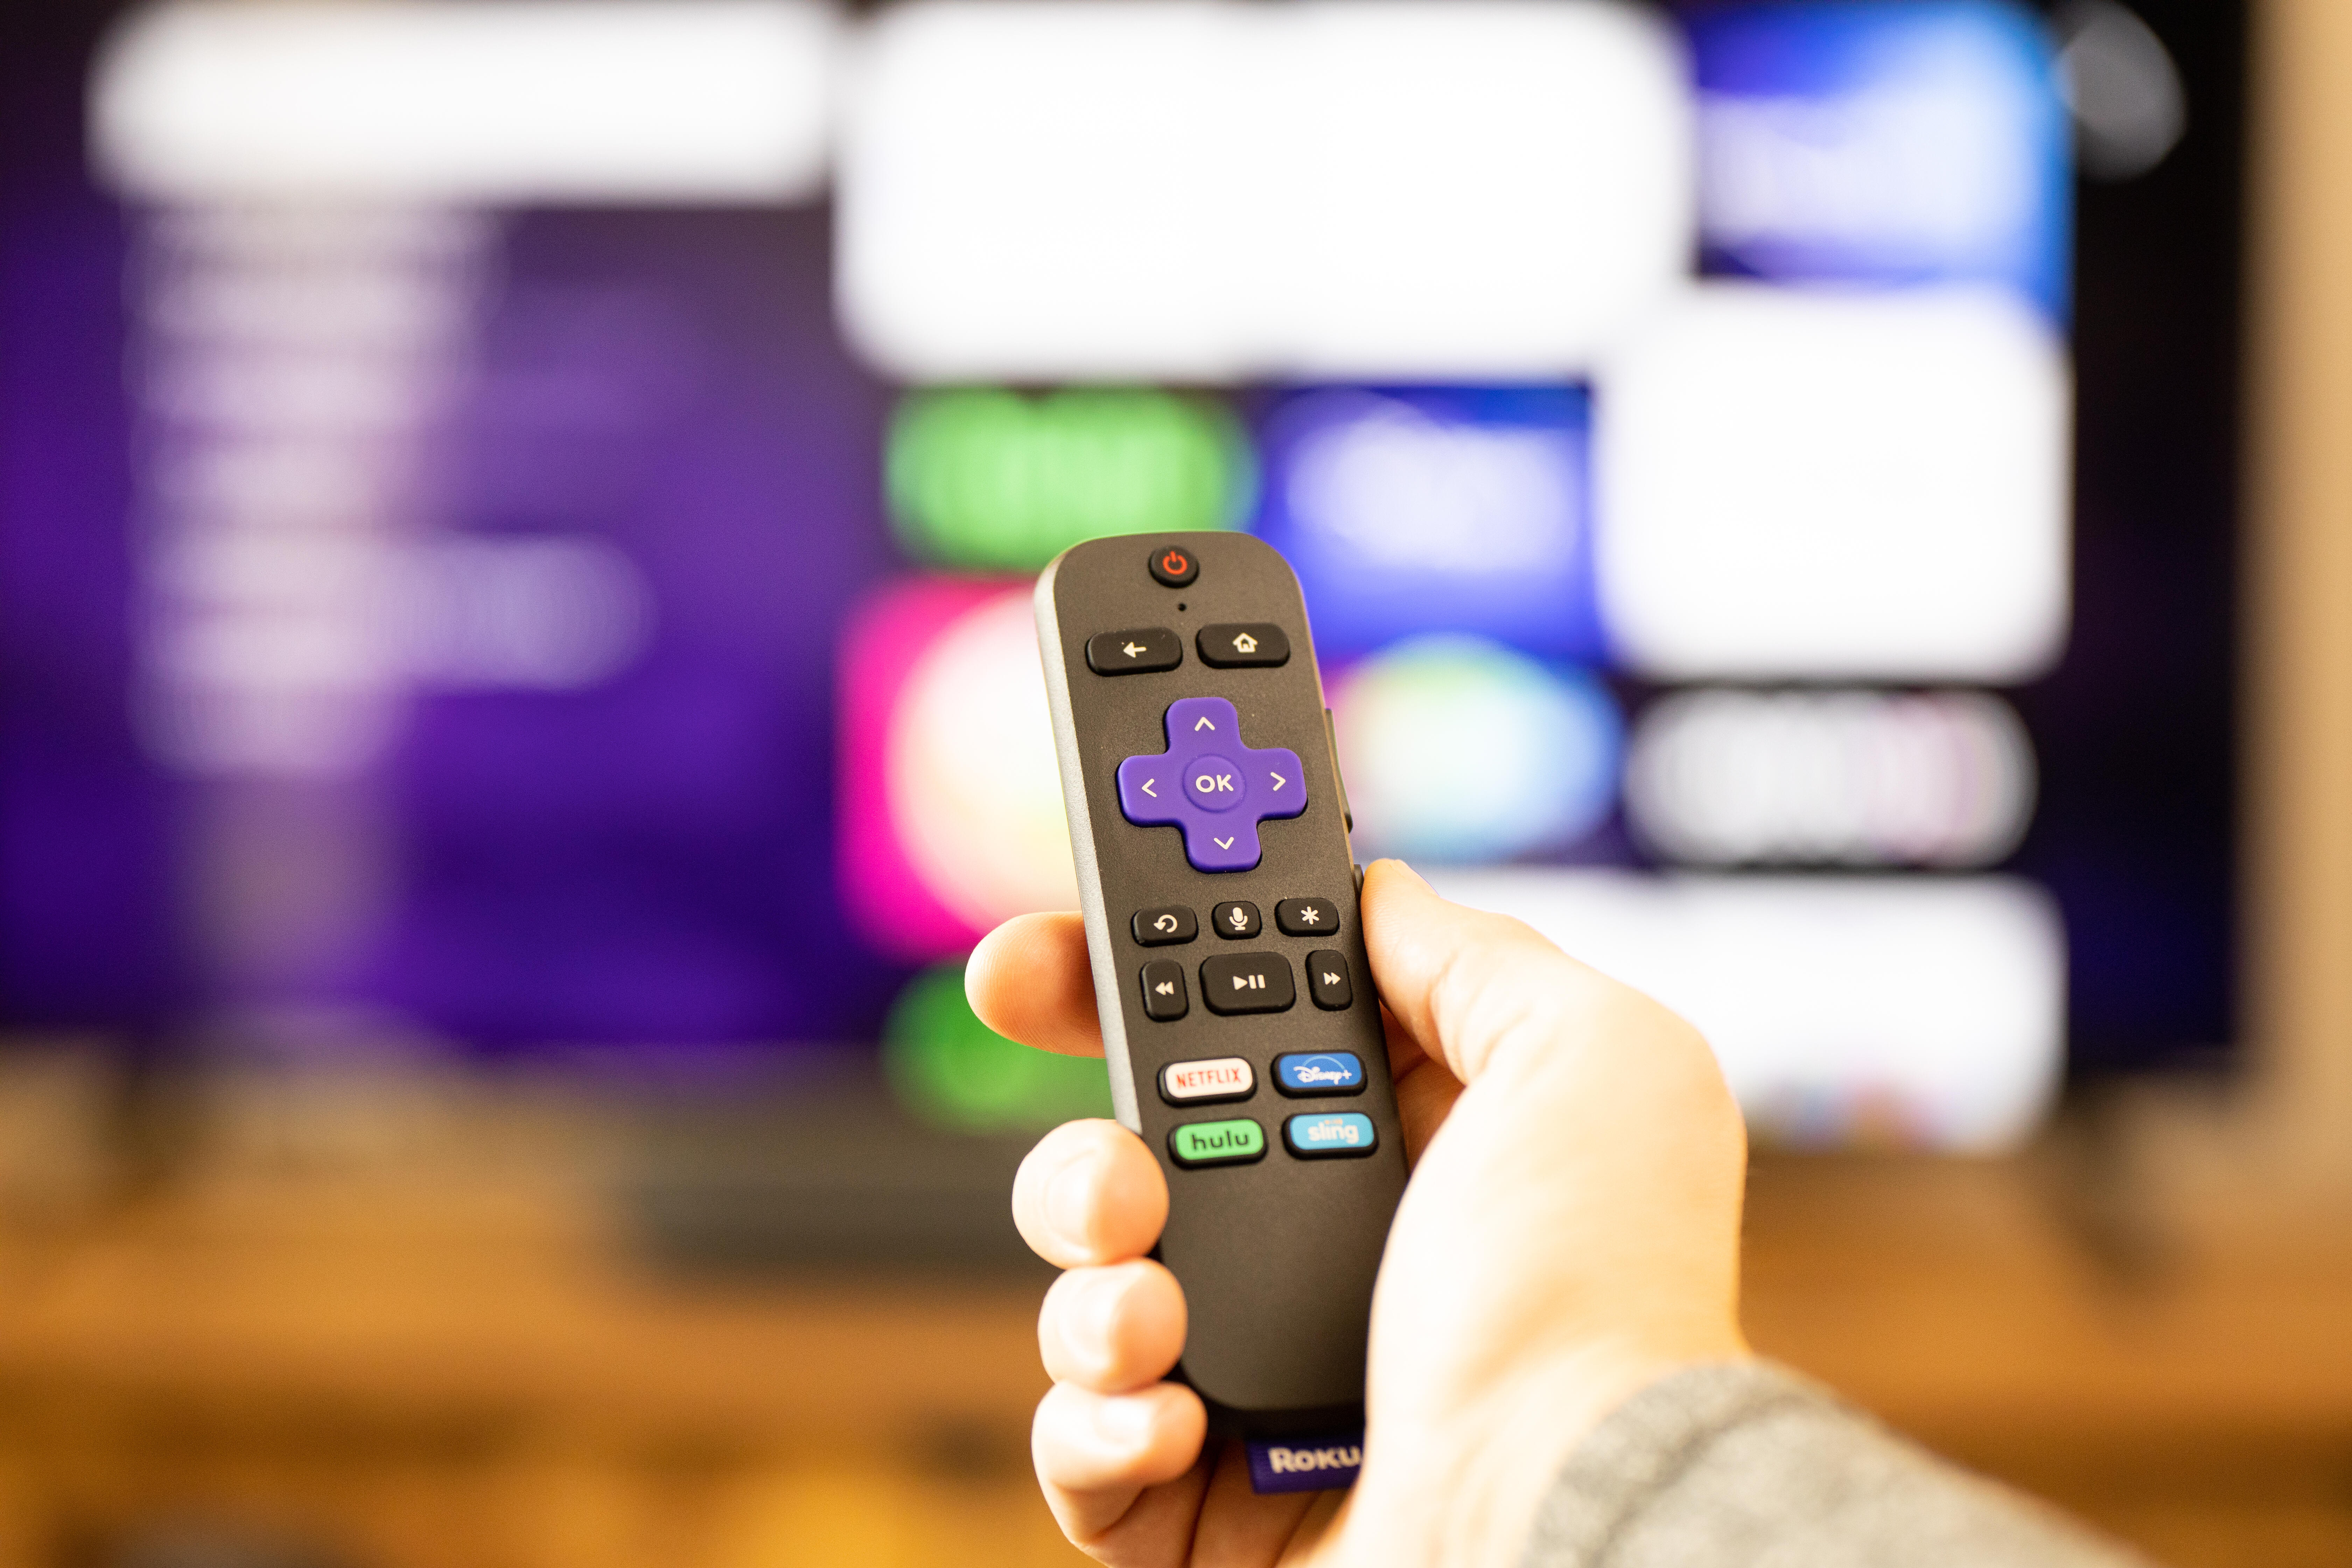 roku-voice-remote-in-hand